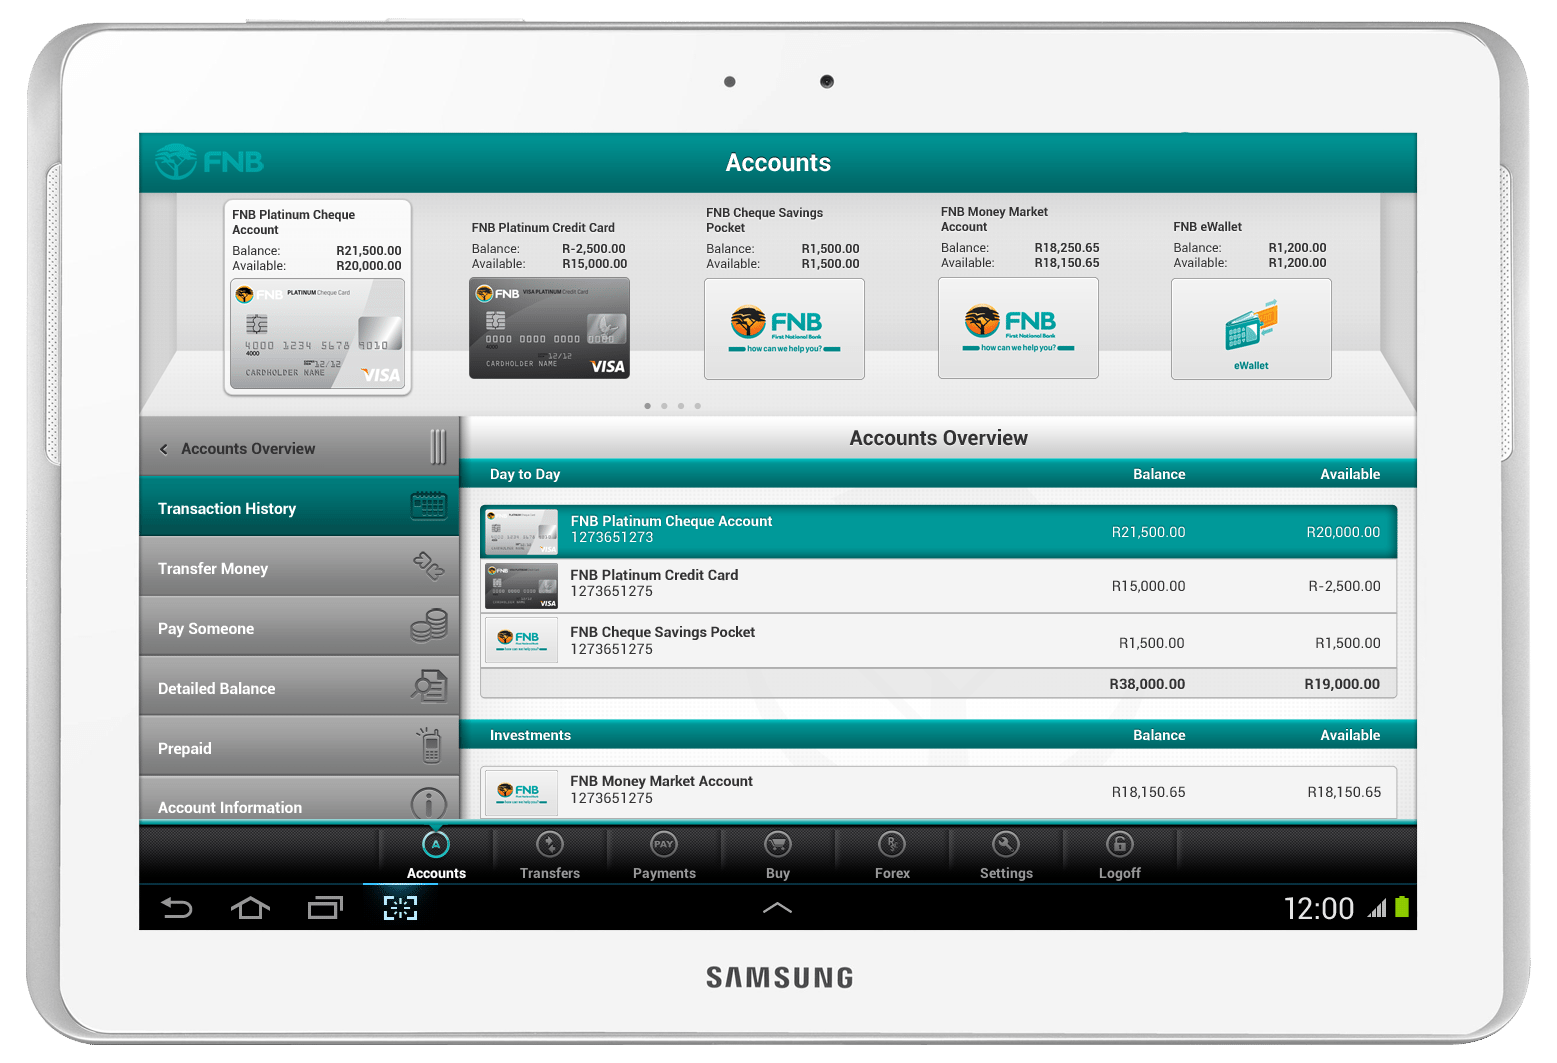 How to make a Global Payment via the FNB App: